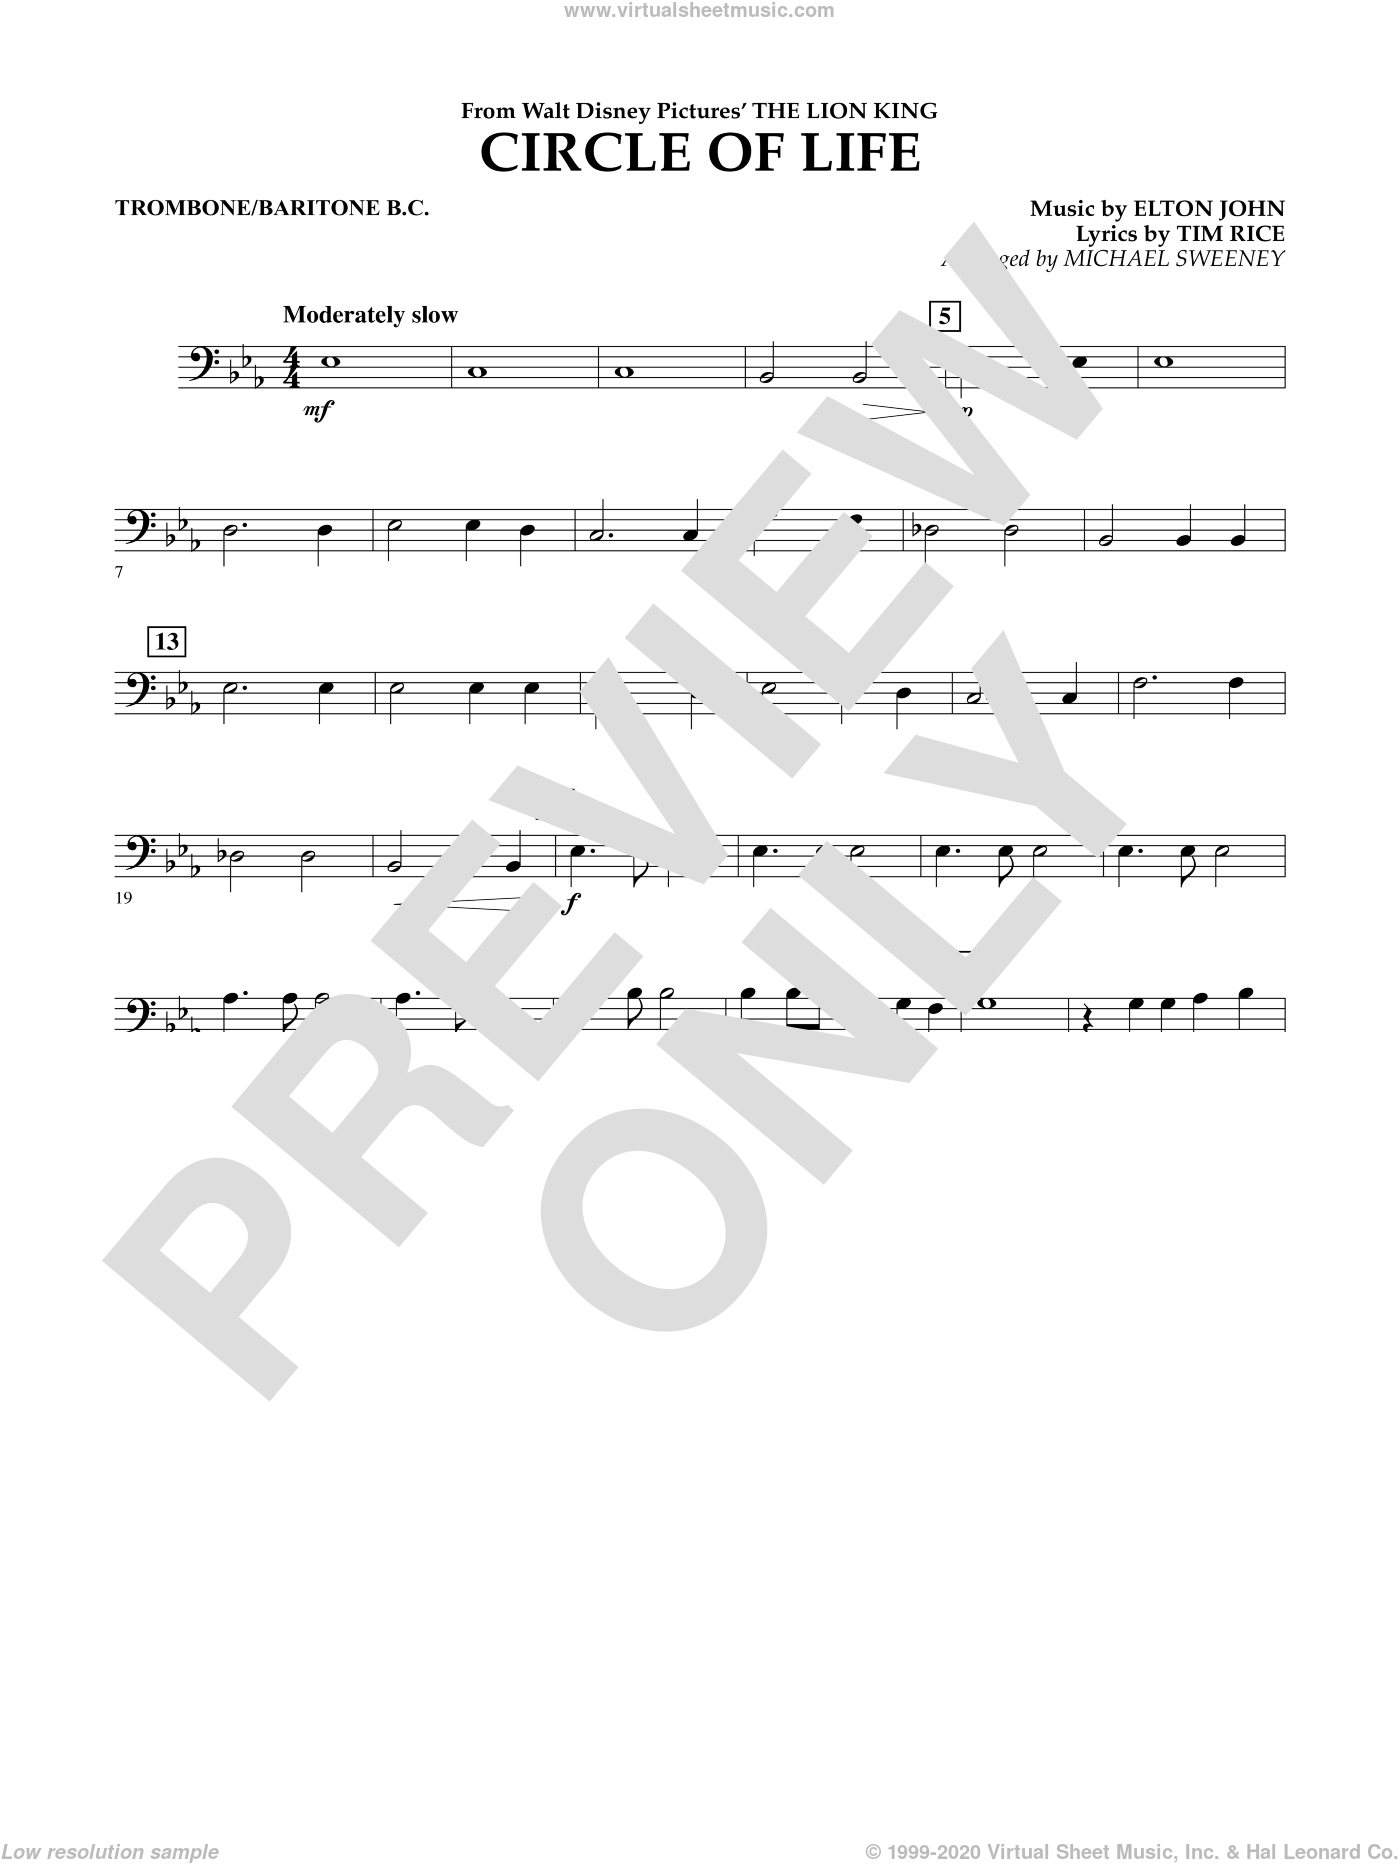 Circle of Life (from The Lion King) sheet music for concert band (trombone/baritone b.c.) by Tim Rice